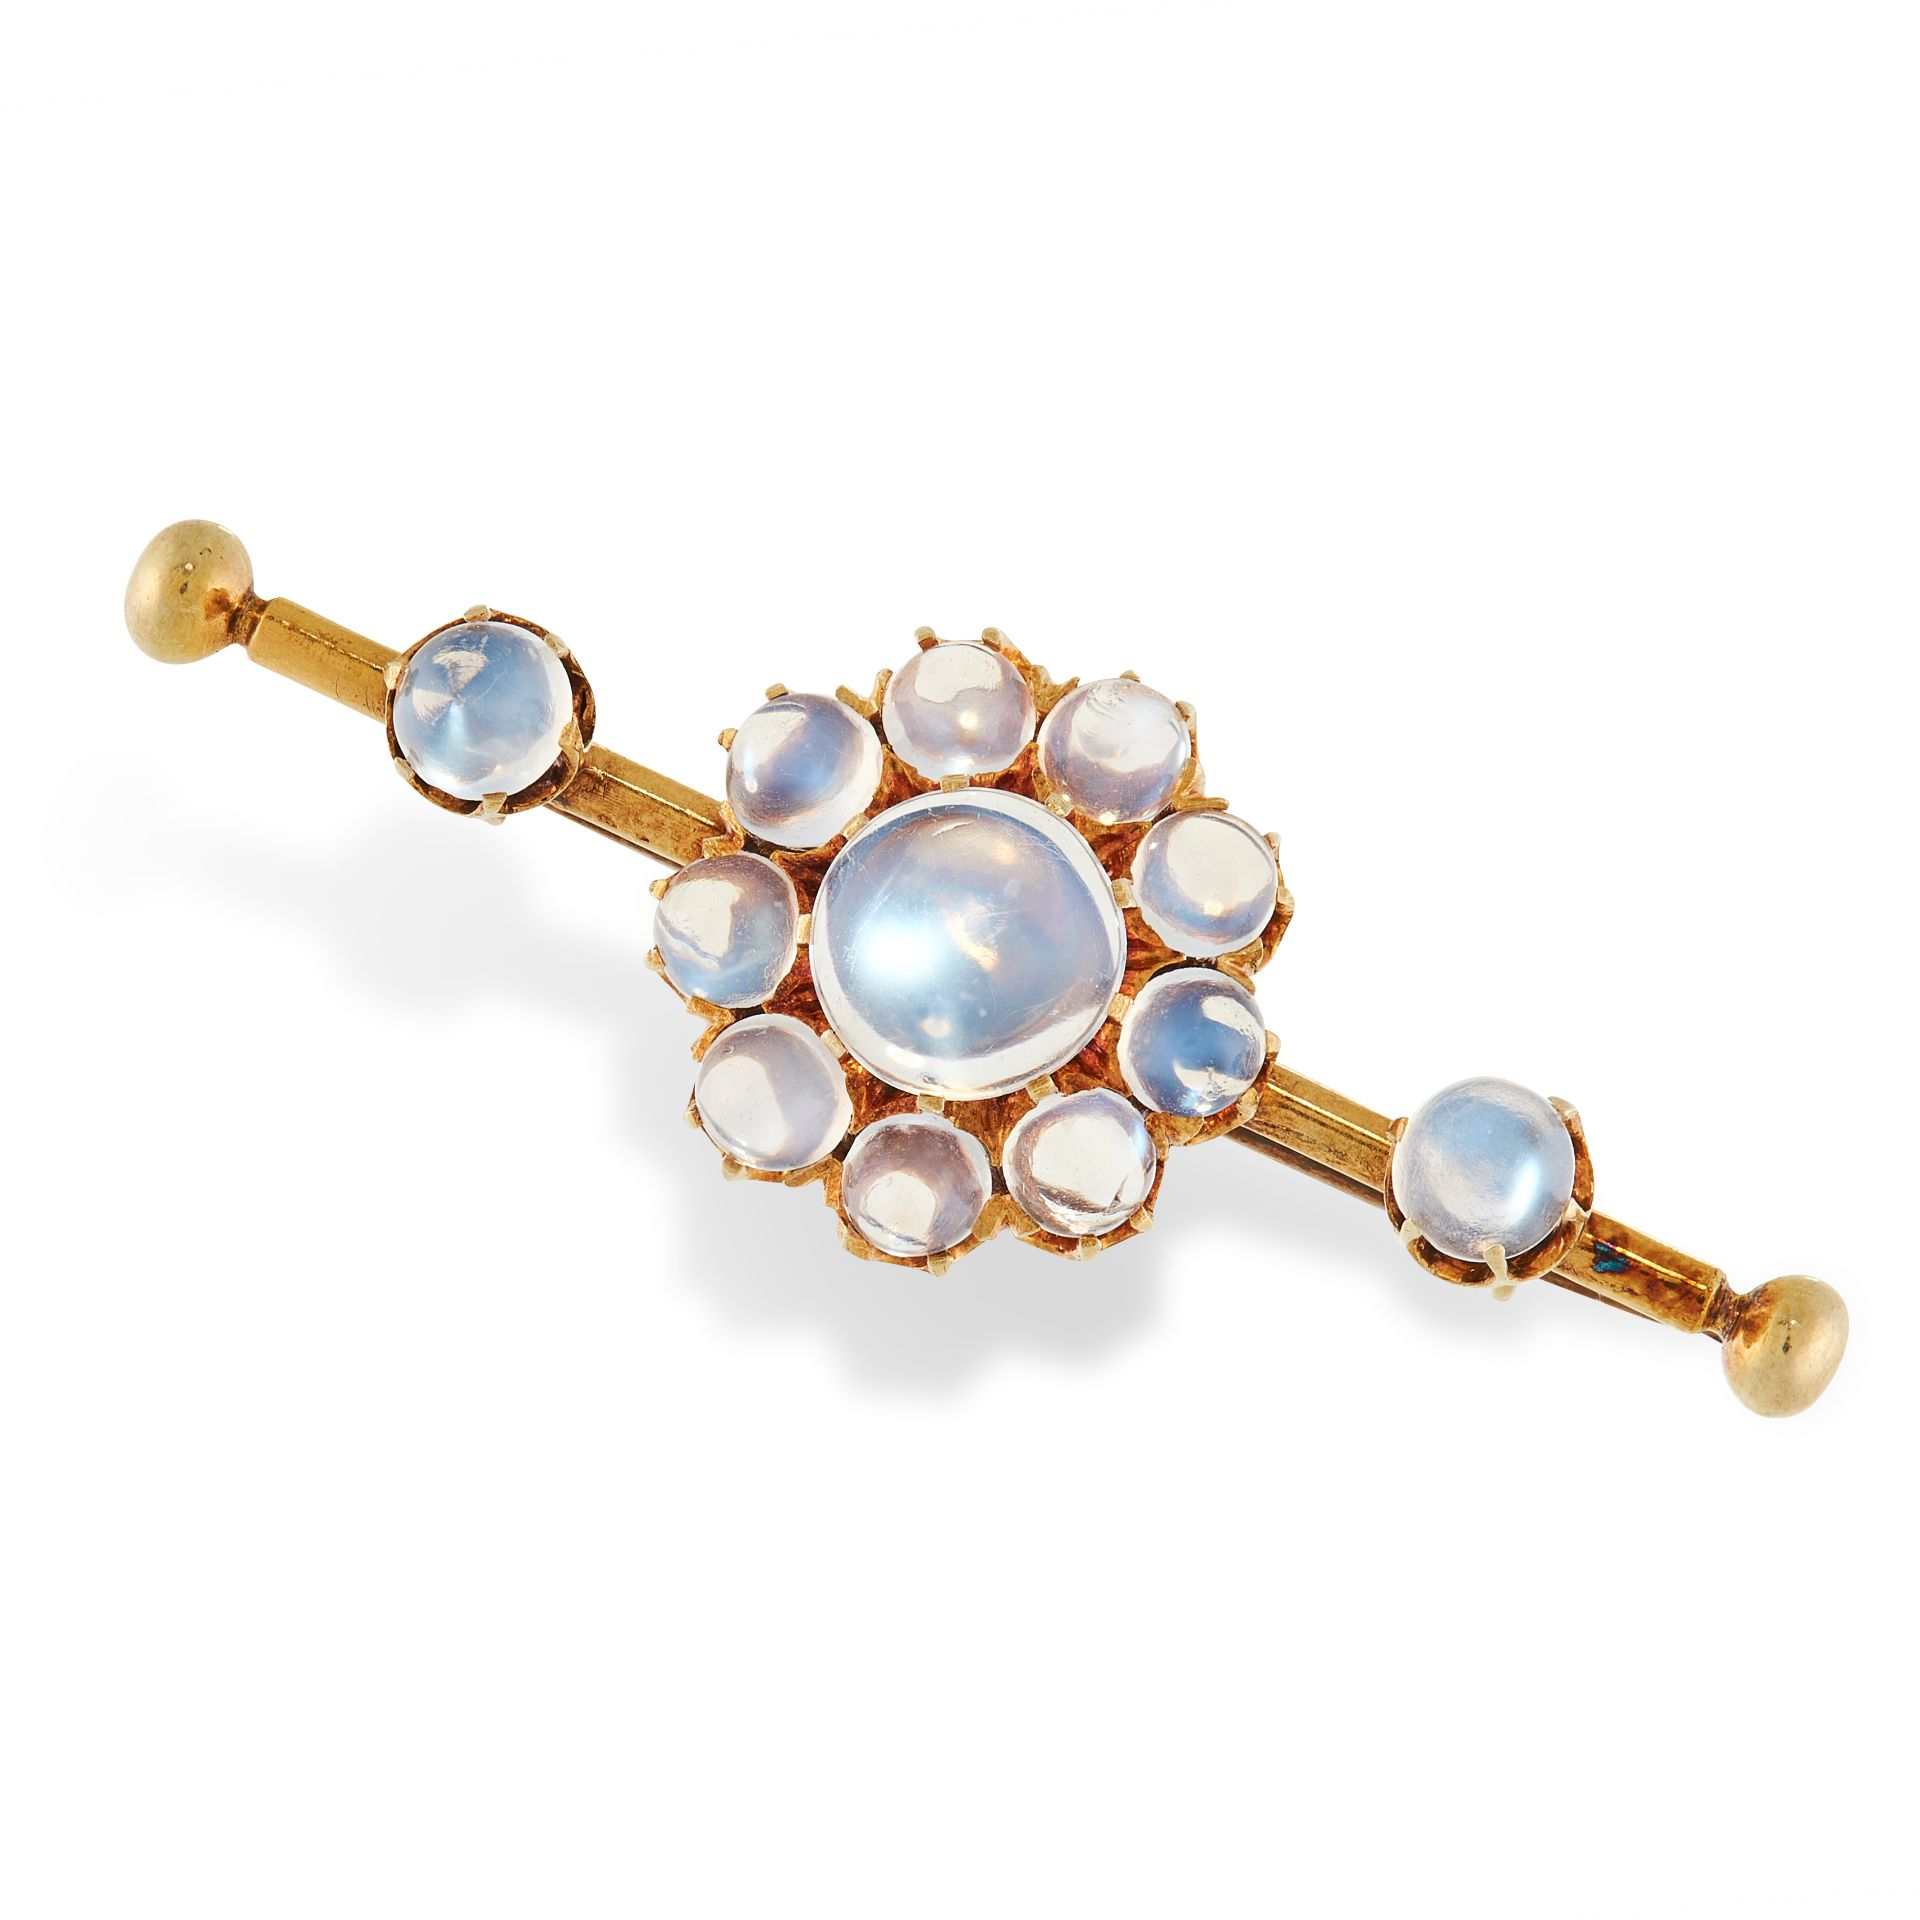 AN ANTIQUE MOONSTONE BAR BROOCH in yellow gold, set with a cluster of cabochon moonstone and two